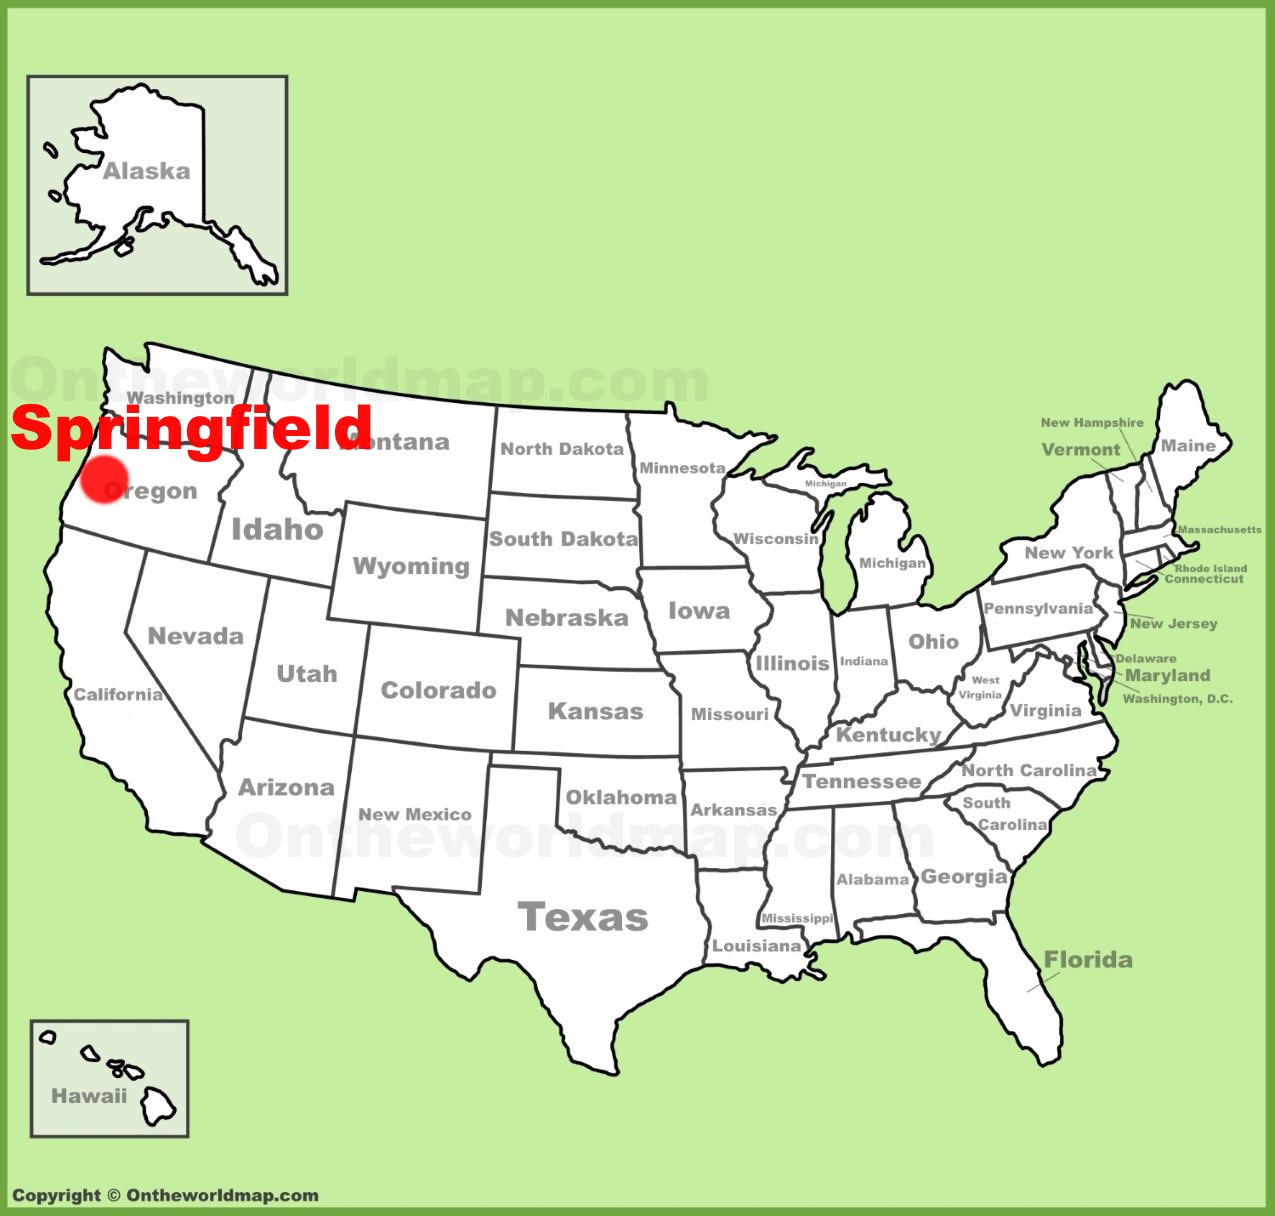 Map Of Springfield Oregon Springfield (Oregon) location on the U.S. Map